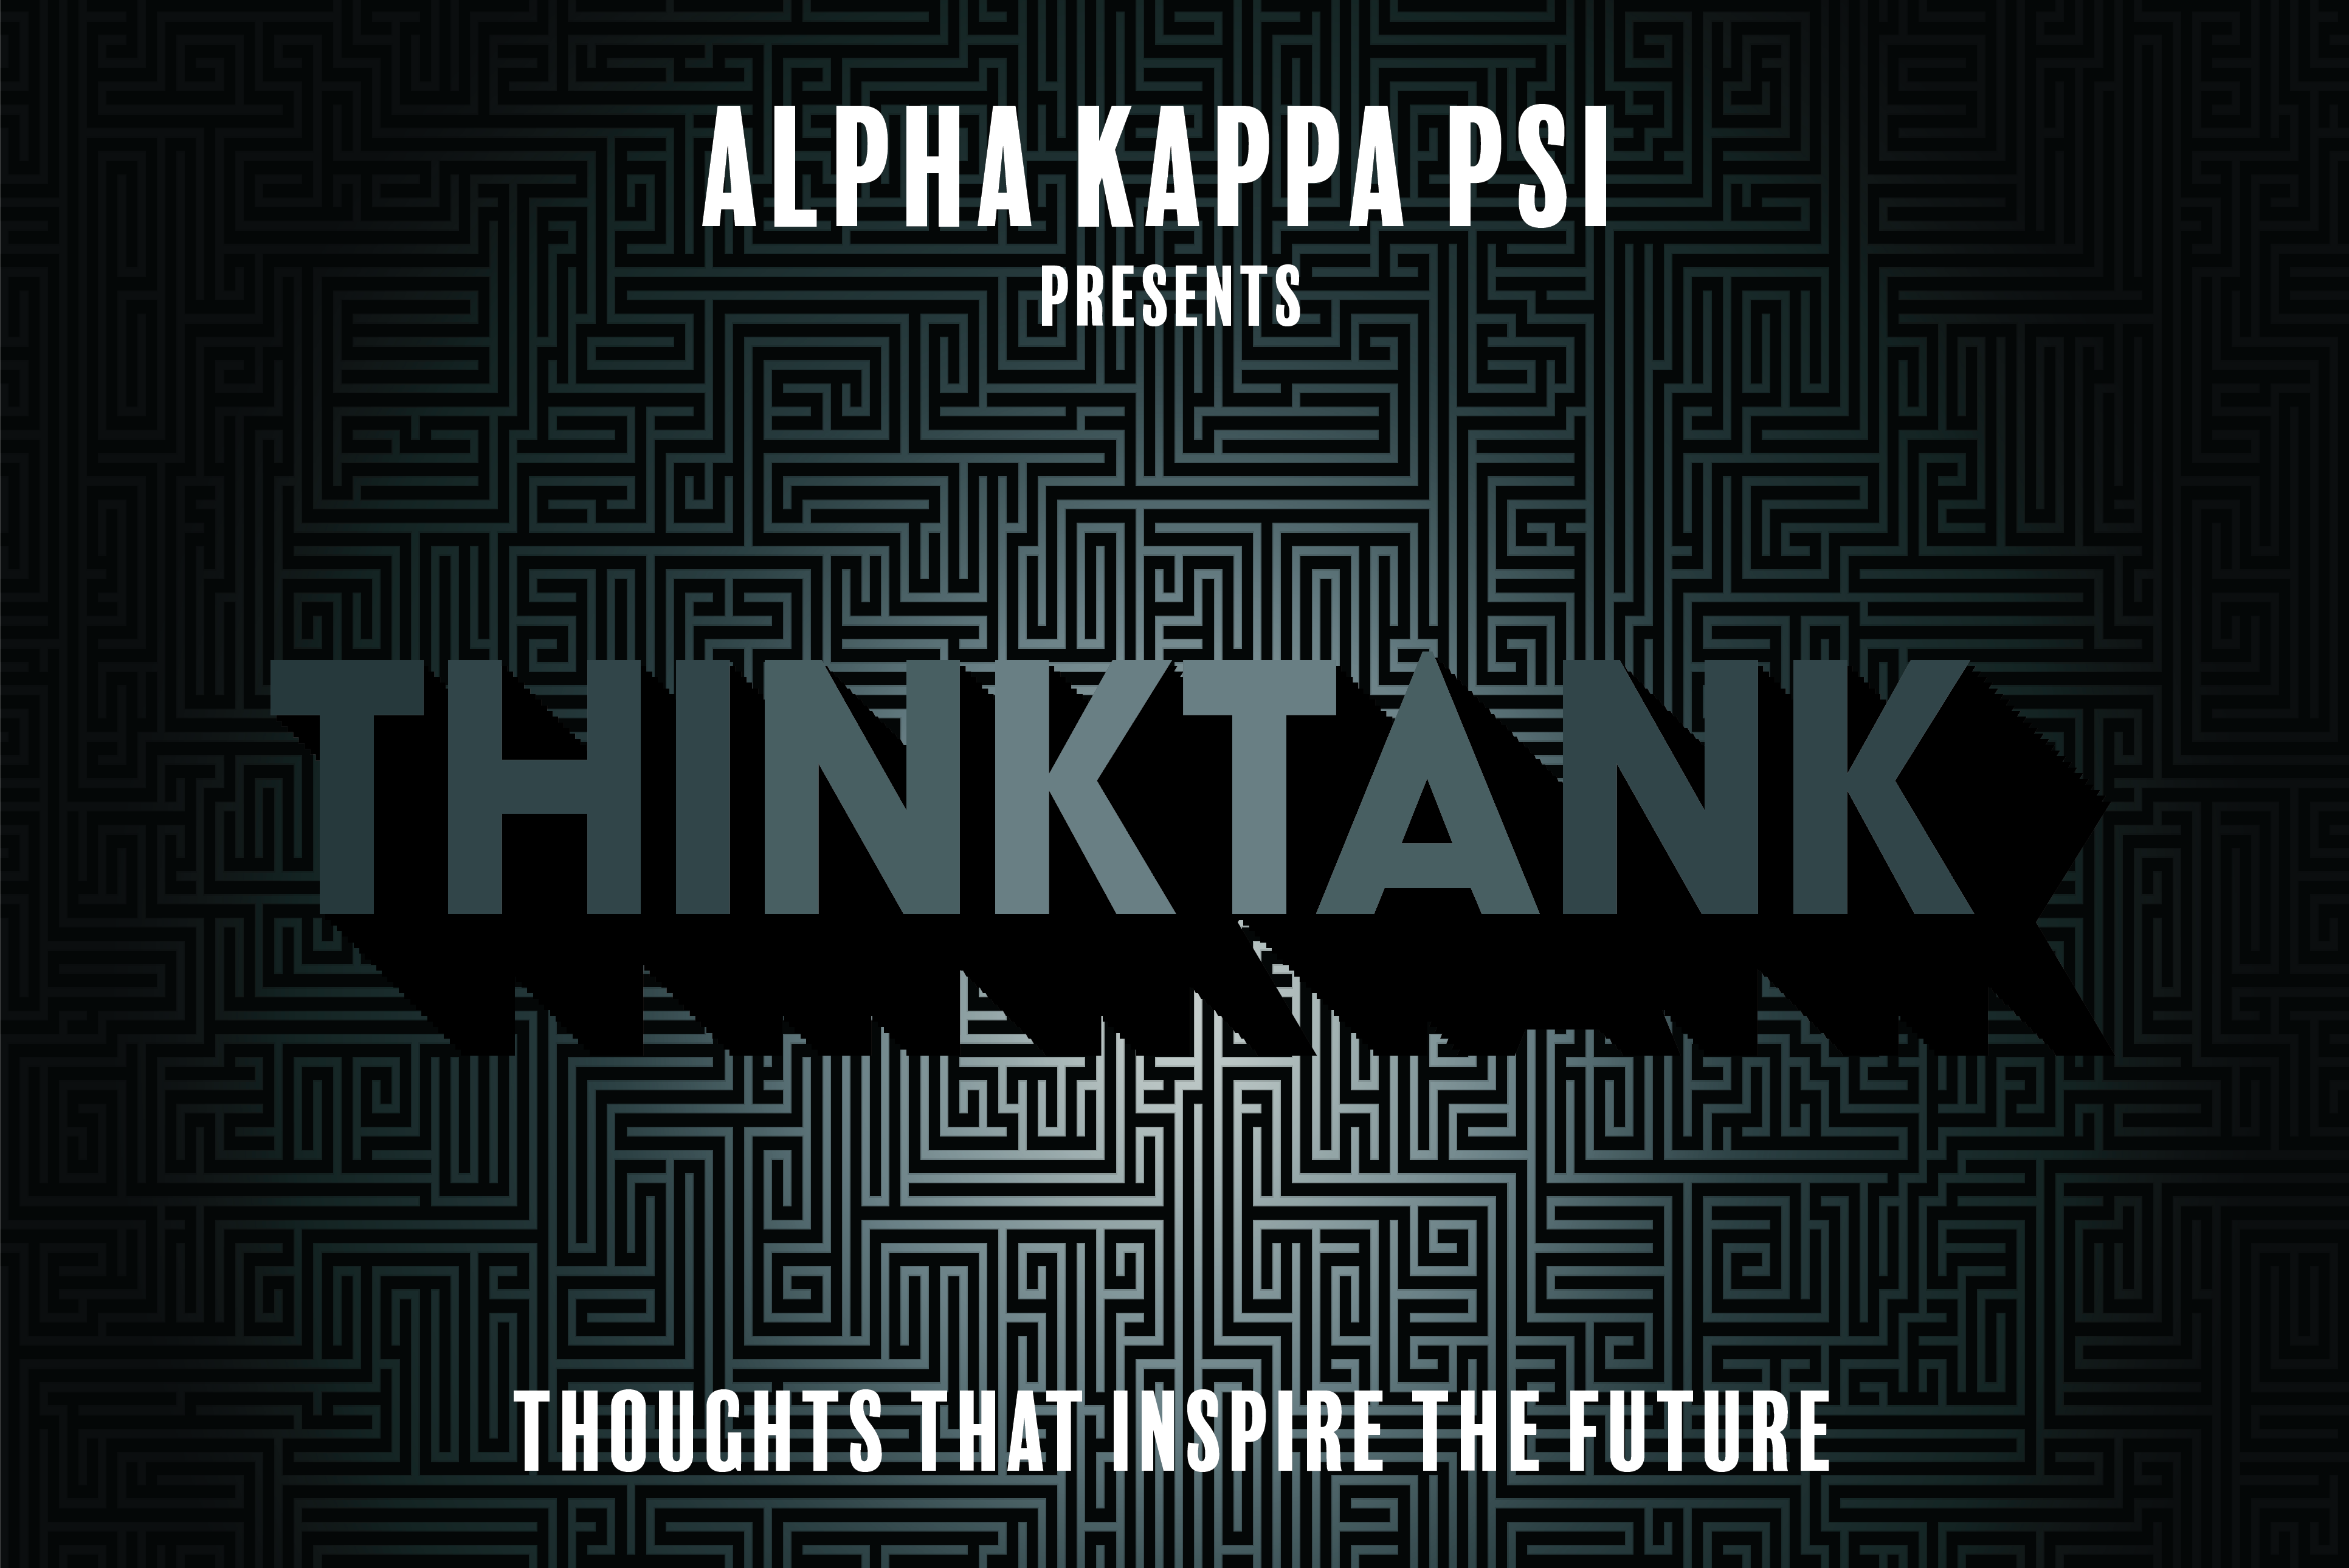 ThinkTank: Thoughts That Inspire the Future